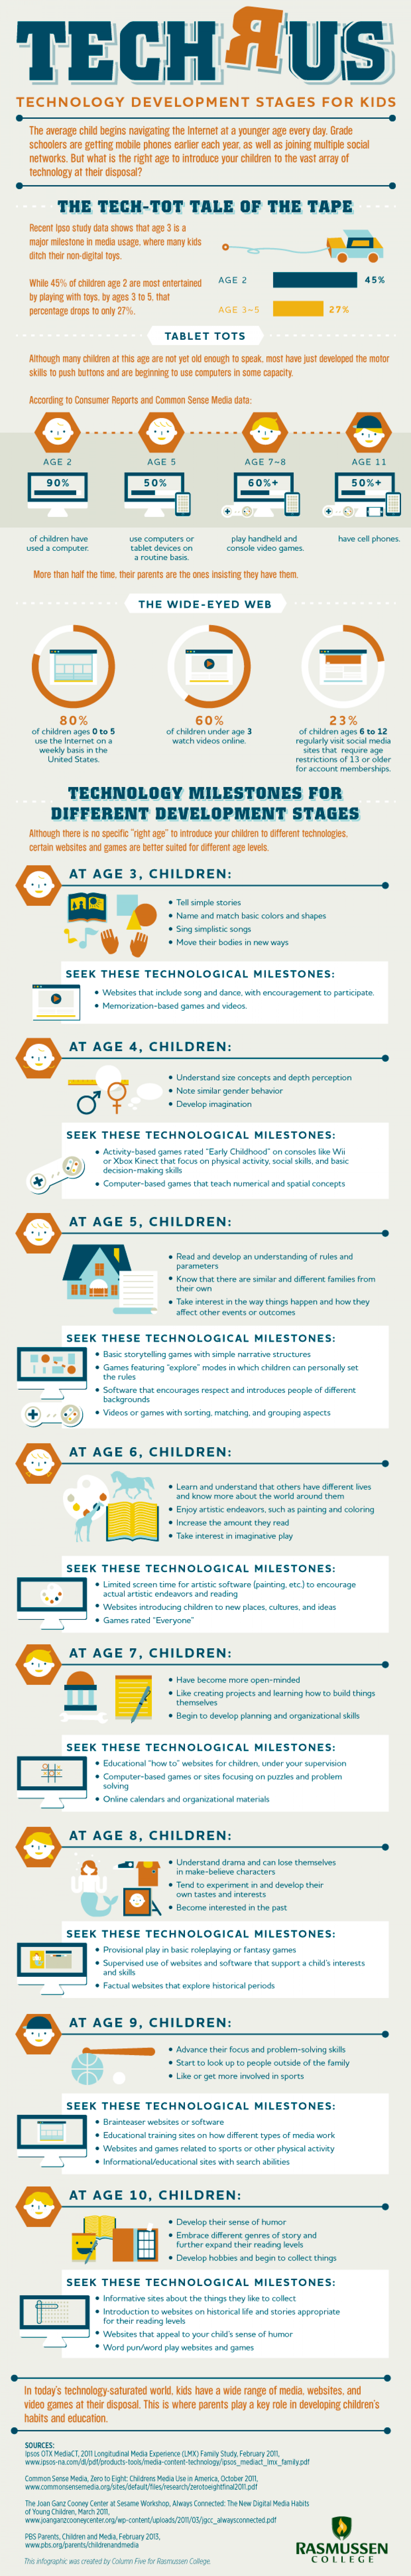 TECH R US - Technology Development Stages for Kids Infographic